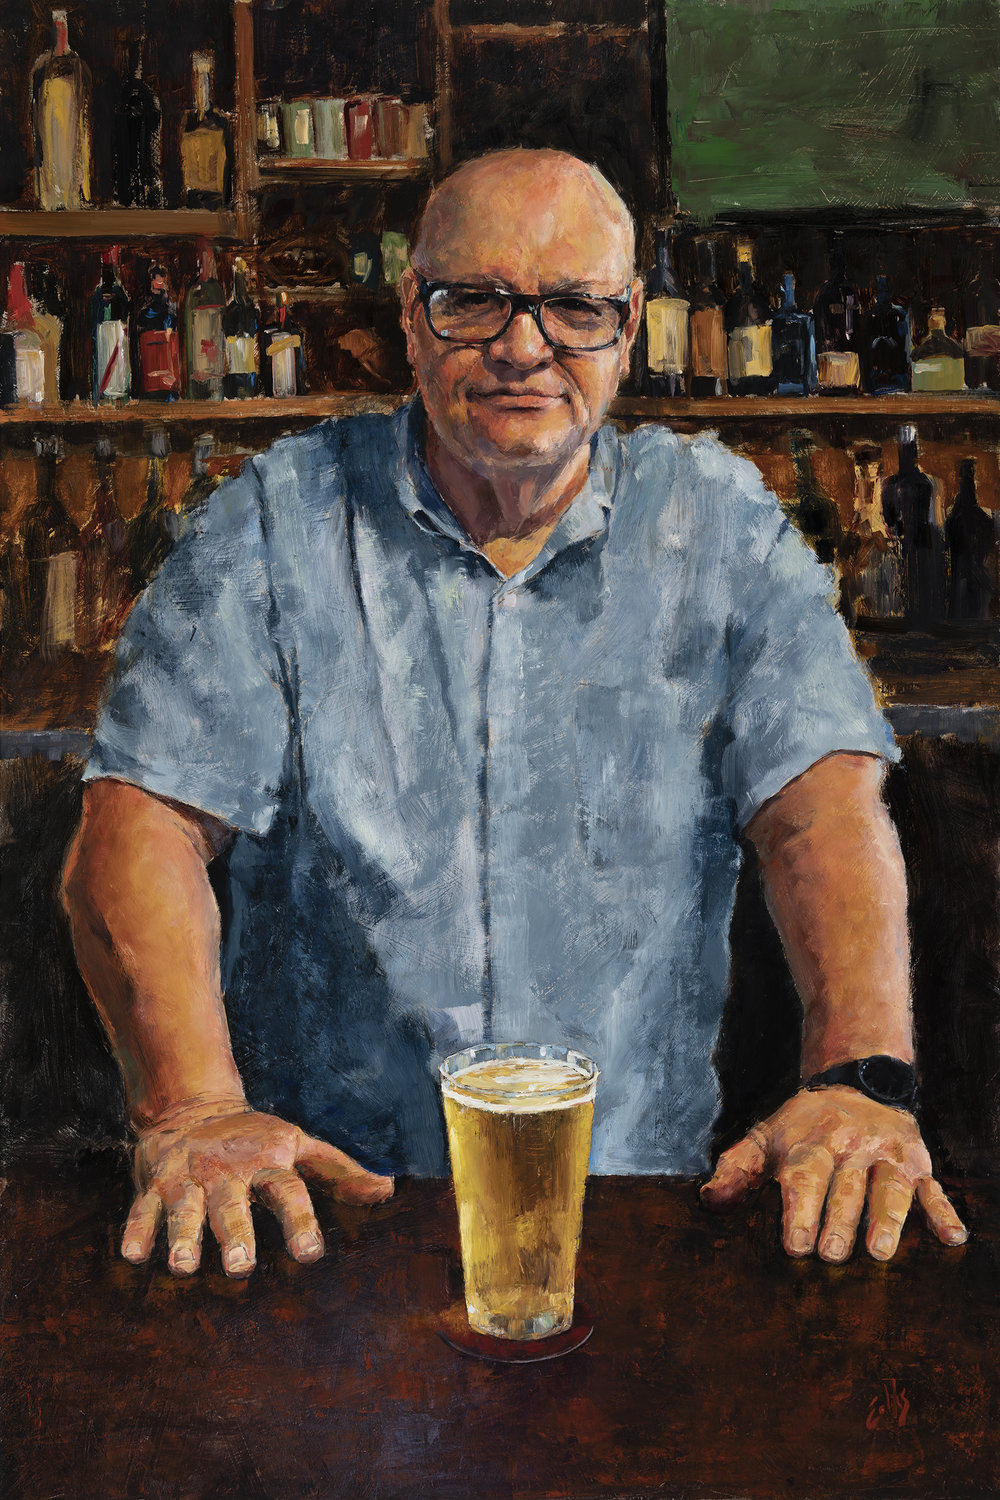 """The Barkeep - Portrait of Michael McCarthy""  36"" x 24"" - Oil on panel  2018 Portrait Society of America Members Competition Third Place"